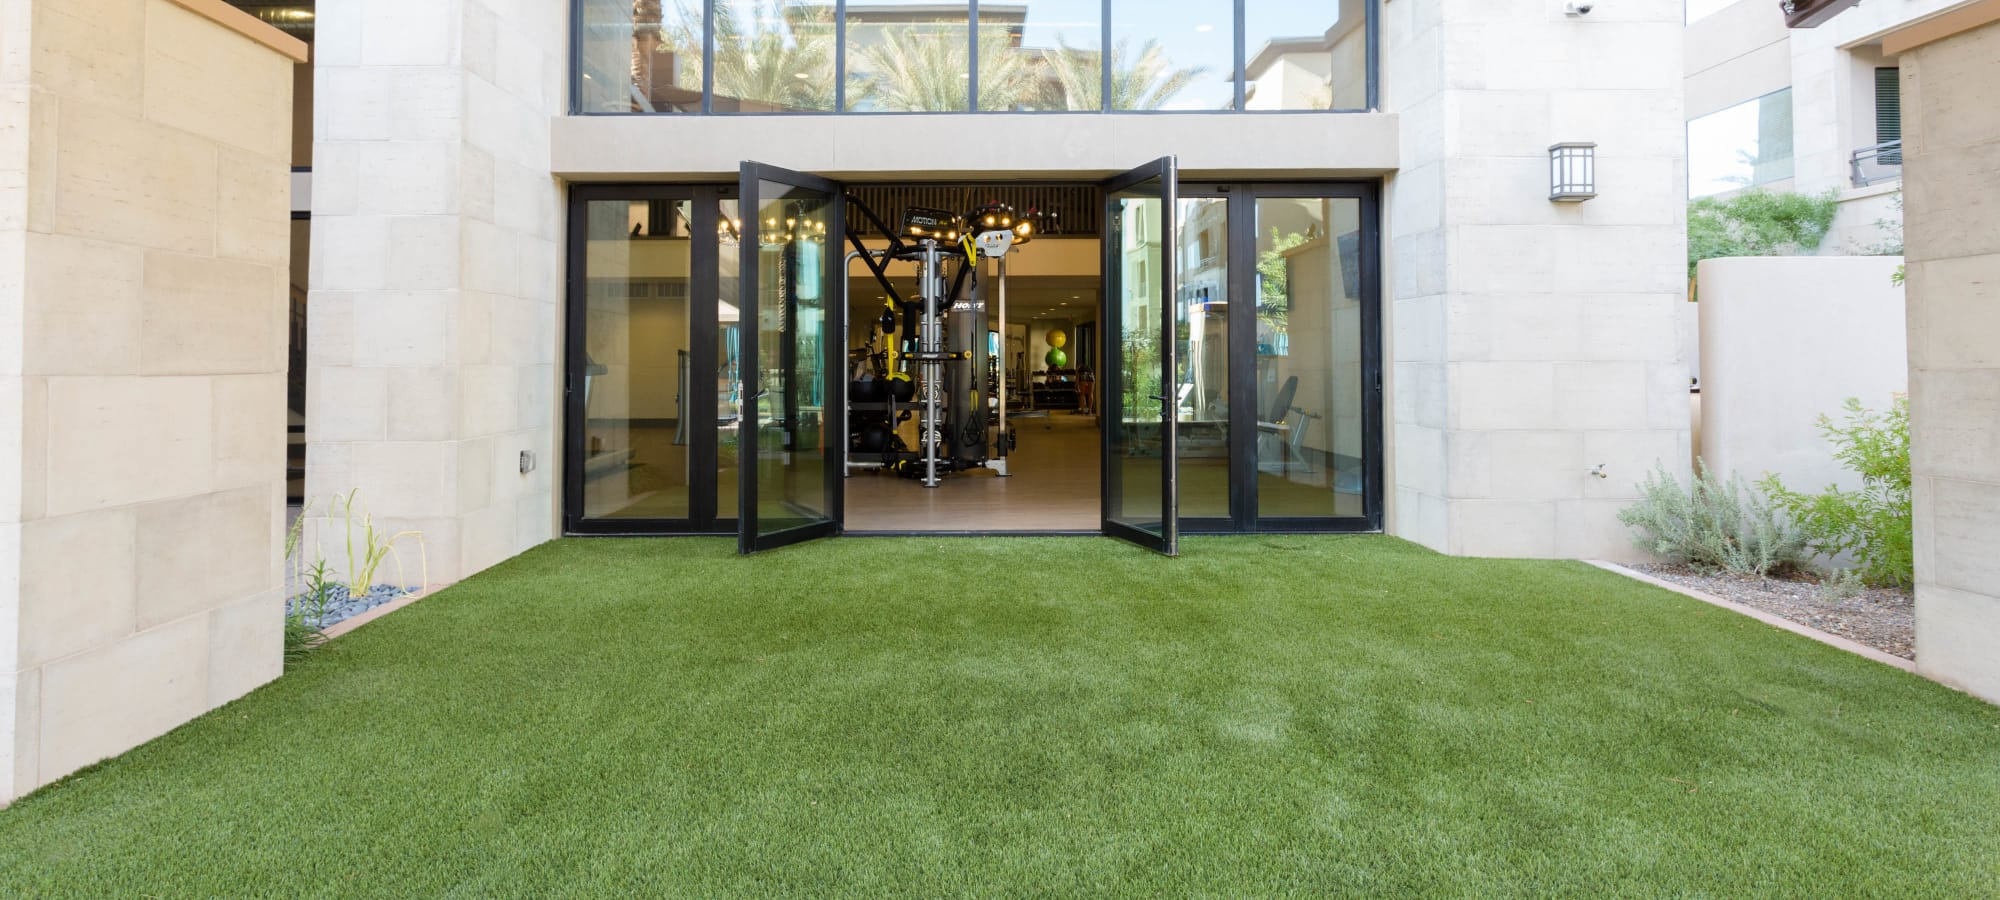 Yoga lawn outside the fitness center at Avant at Fashion Center in Chandler, Arizona